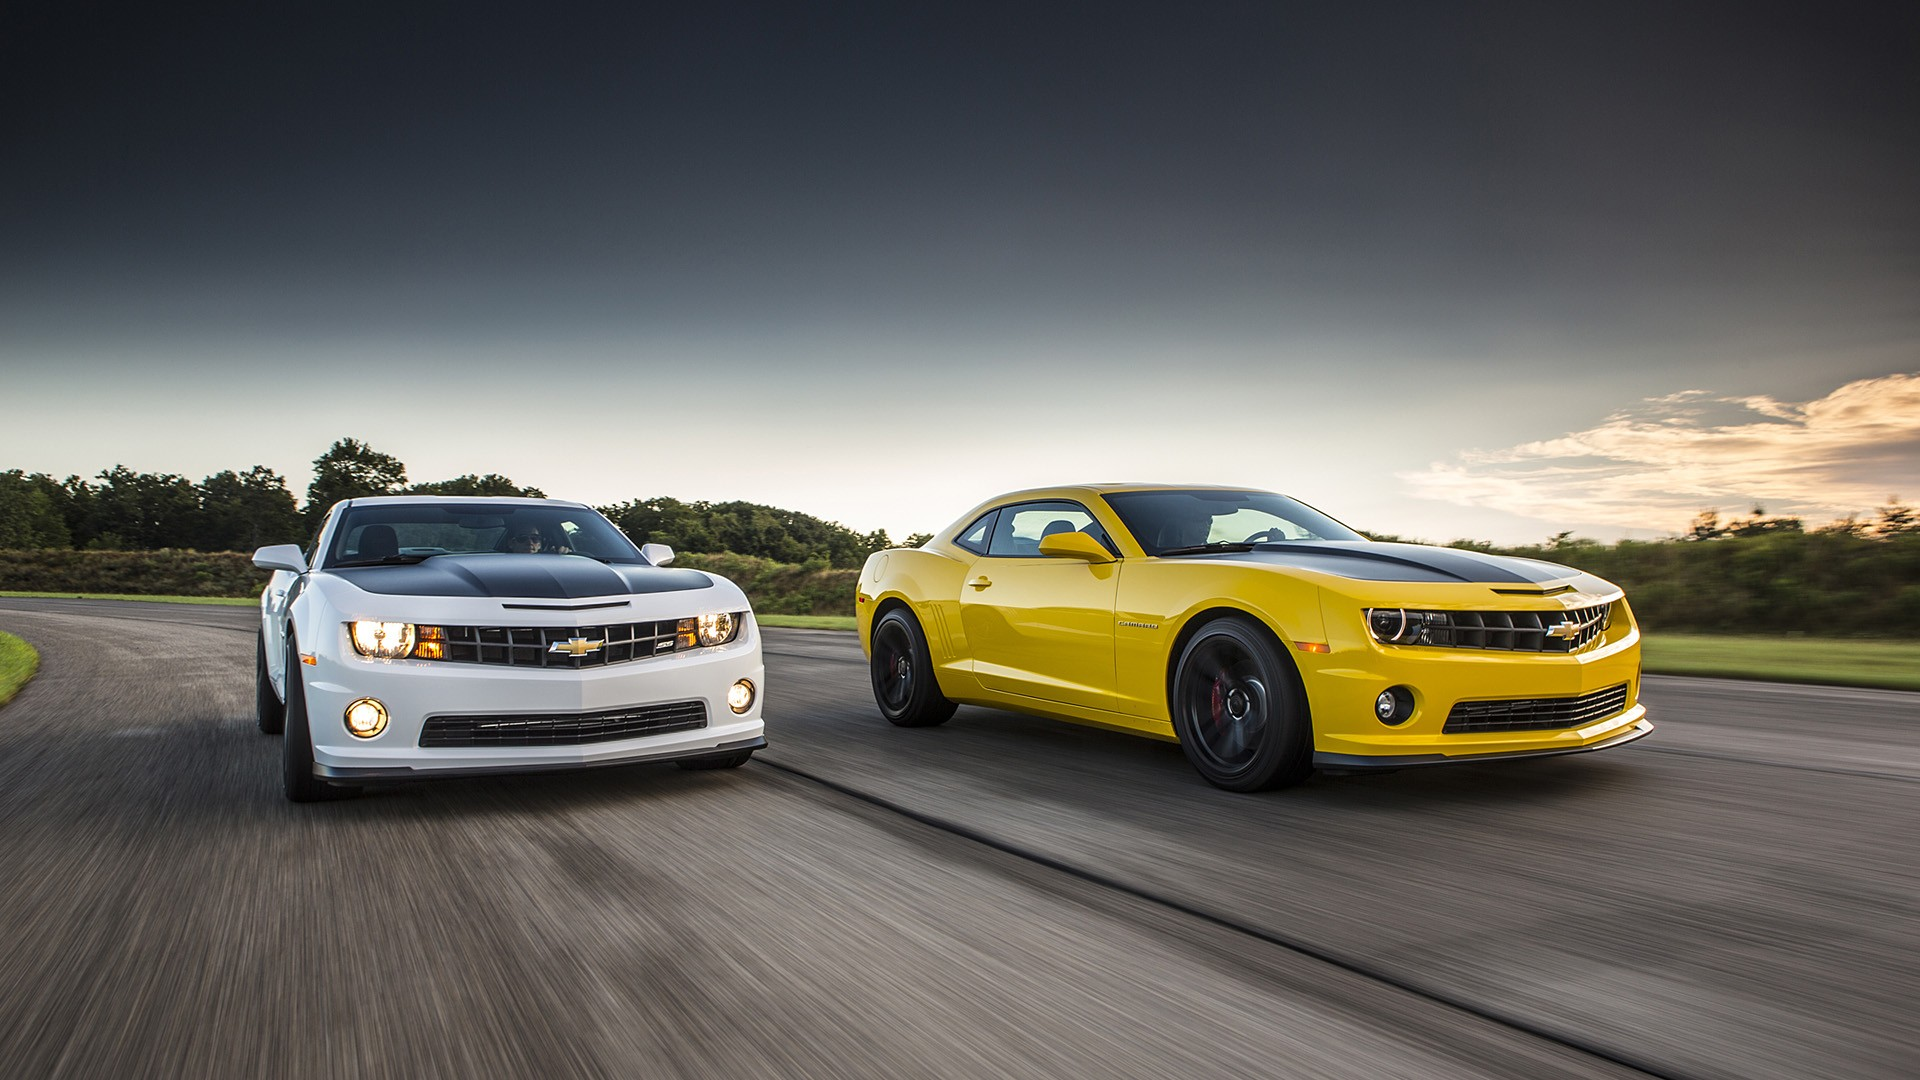 New Chevrolet Chevy Camaro Hd Wallpaper Of Car PIC MCH089554